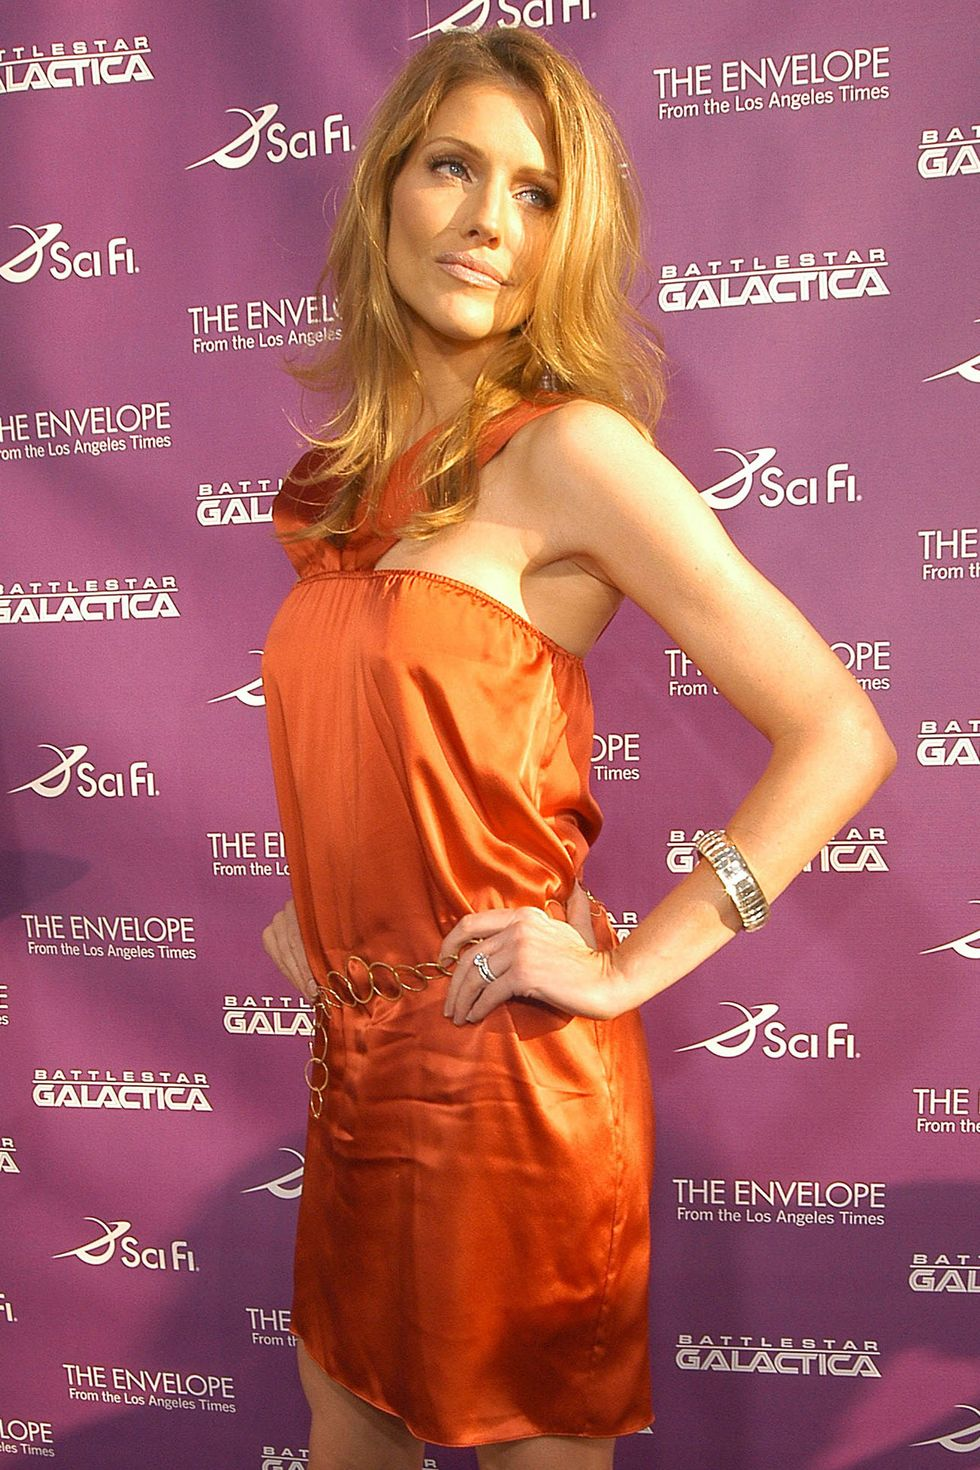 tricia-helfer-battlestar-galactica-exclusive-celebration-in-los-angeles-01